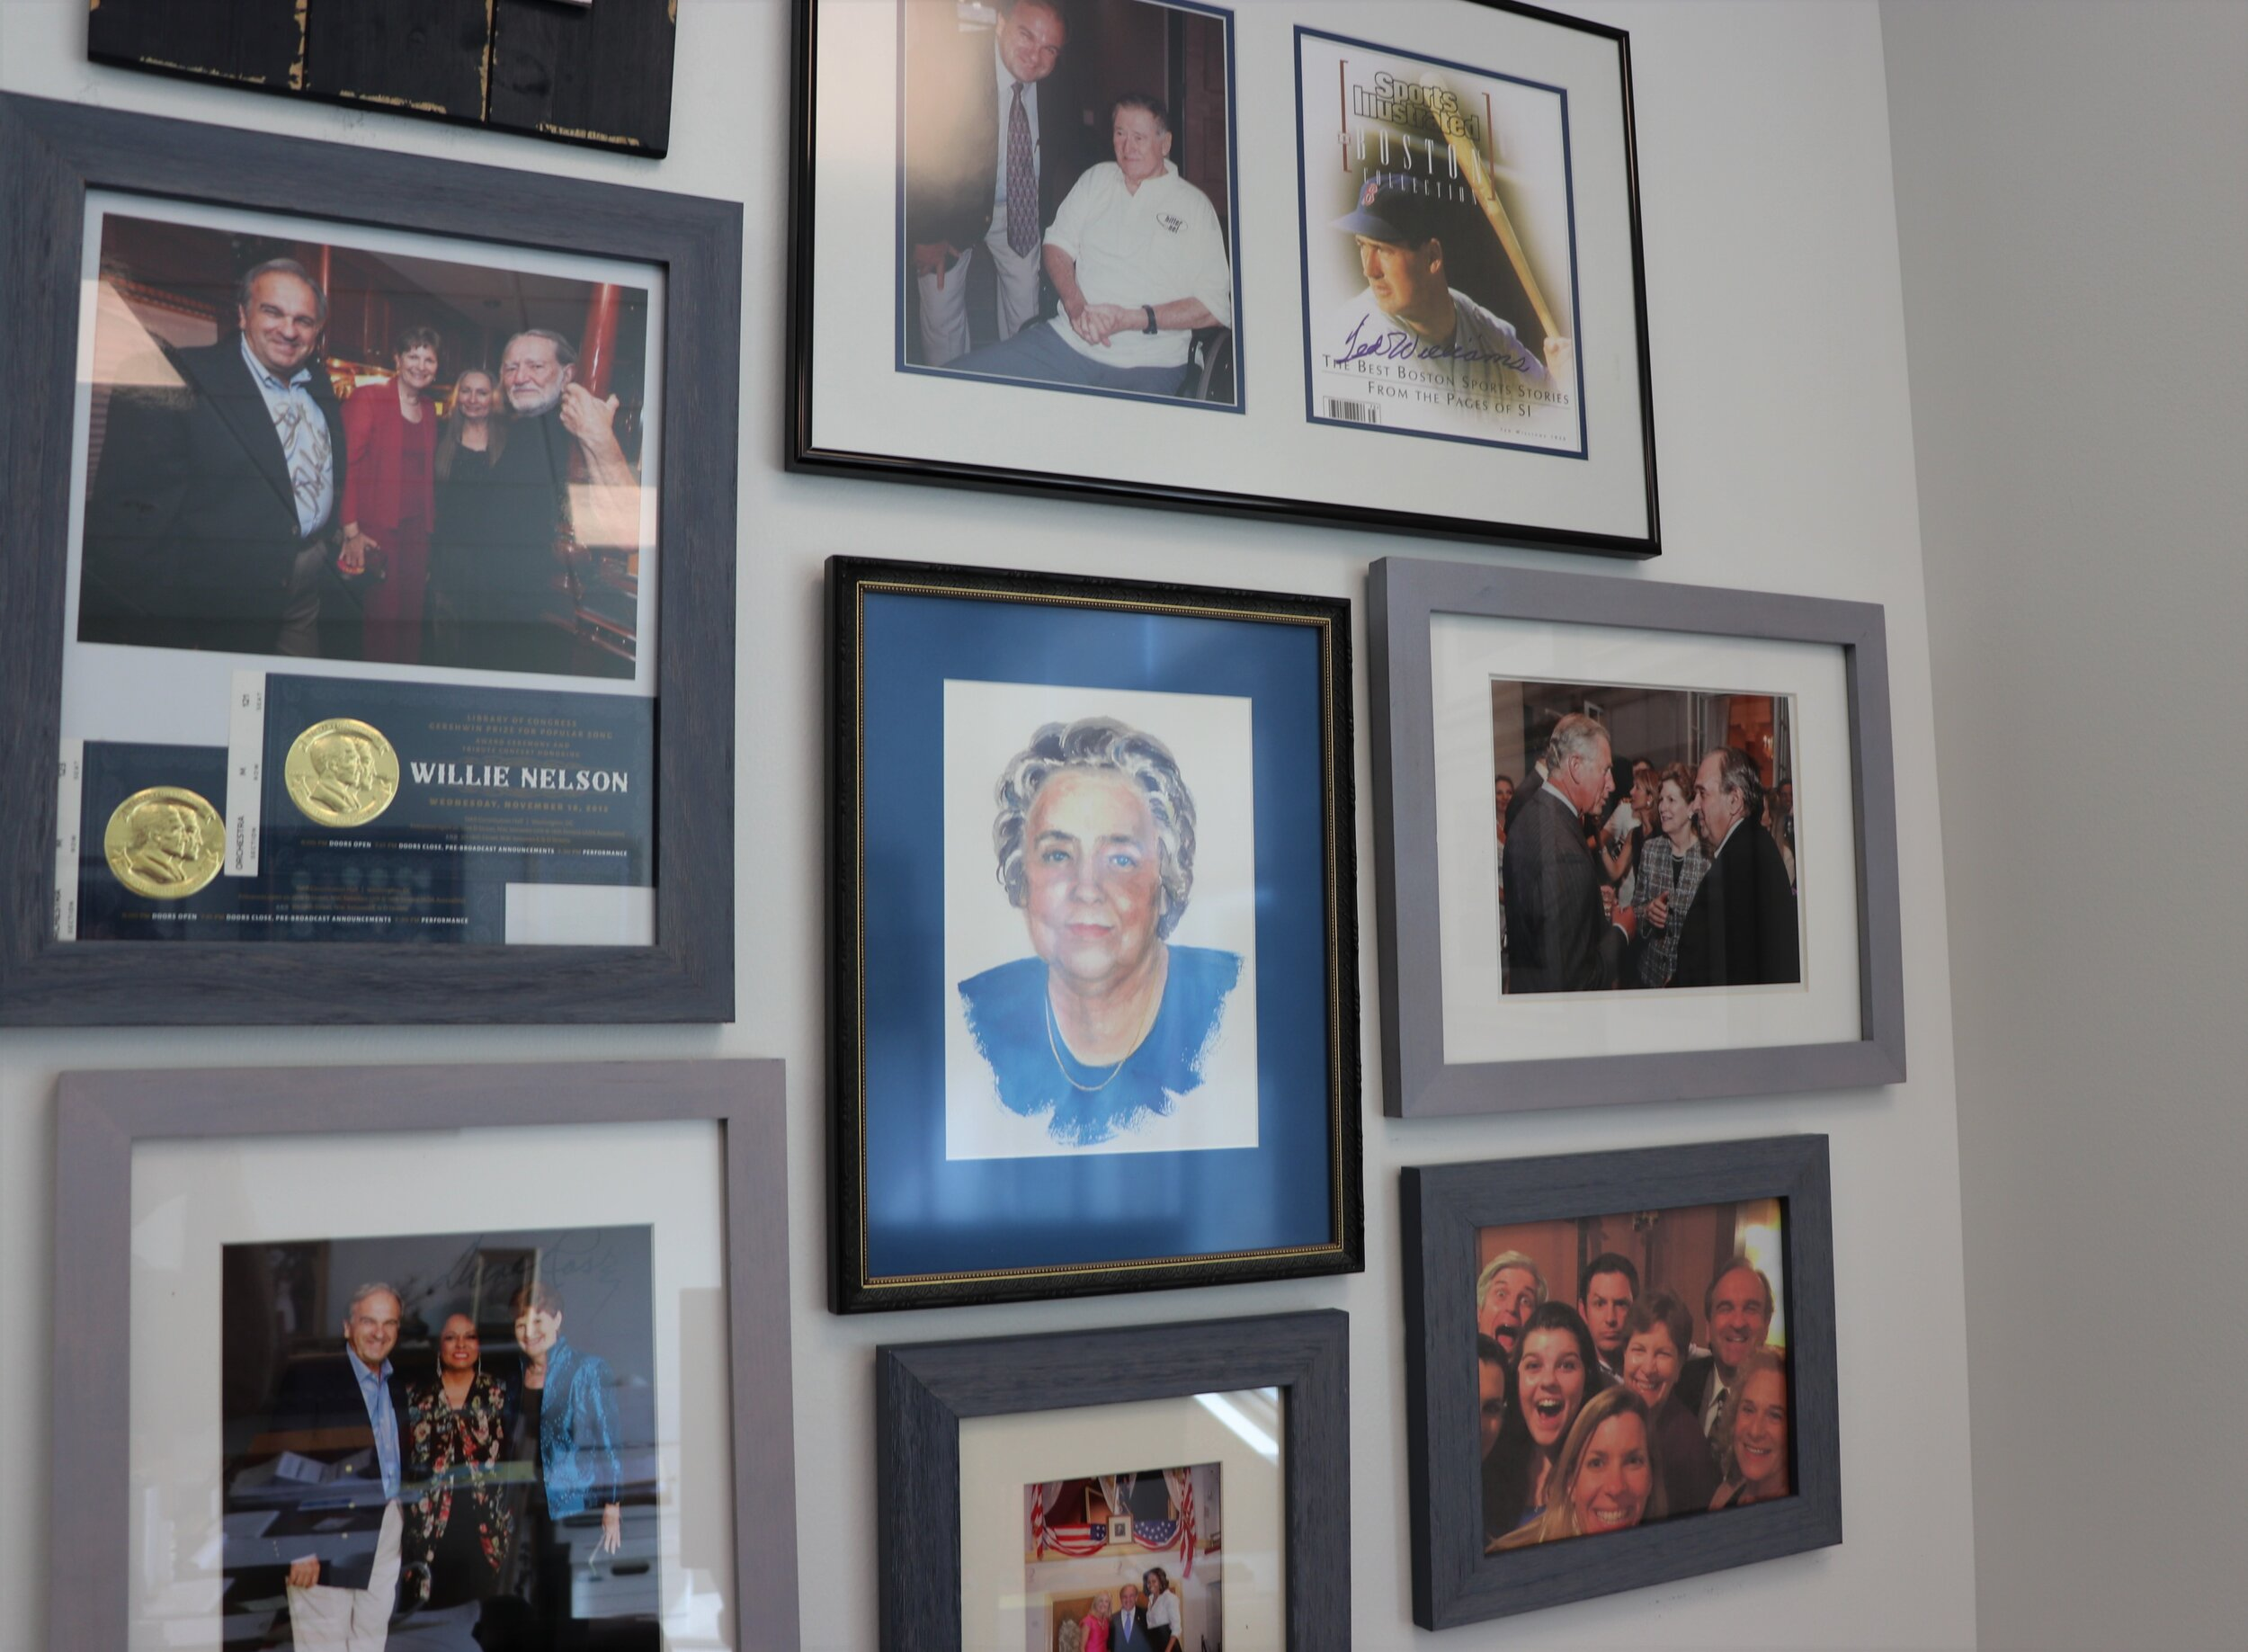 Another view of Shaheen's wall of fame. Photo by Dan Tuohy.